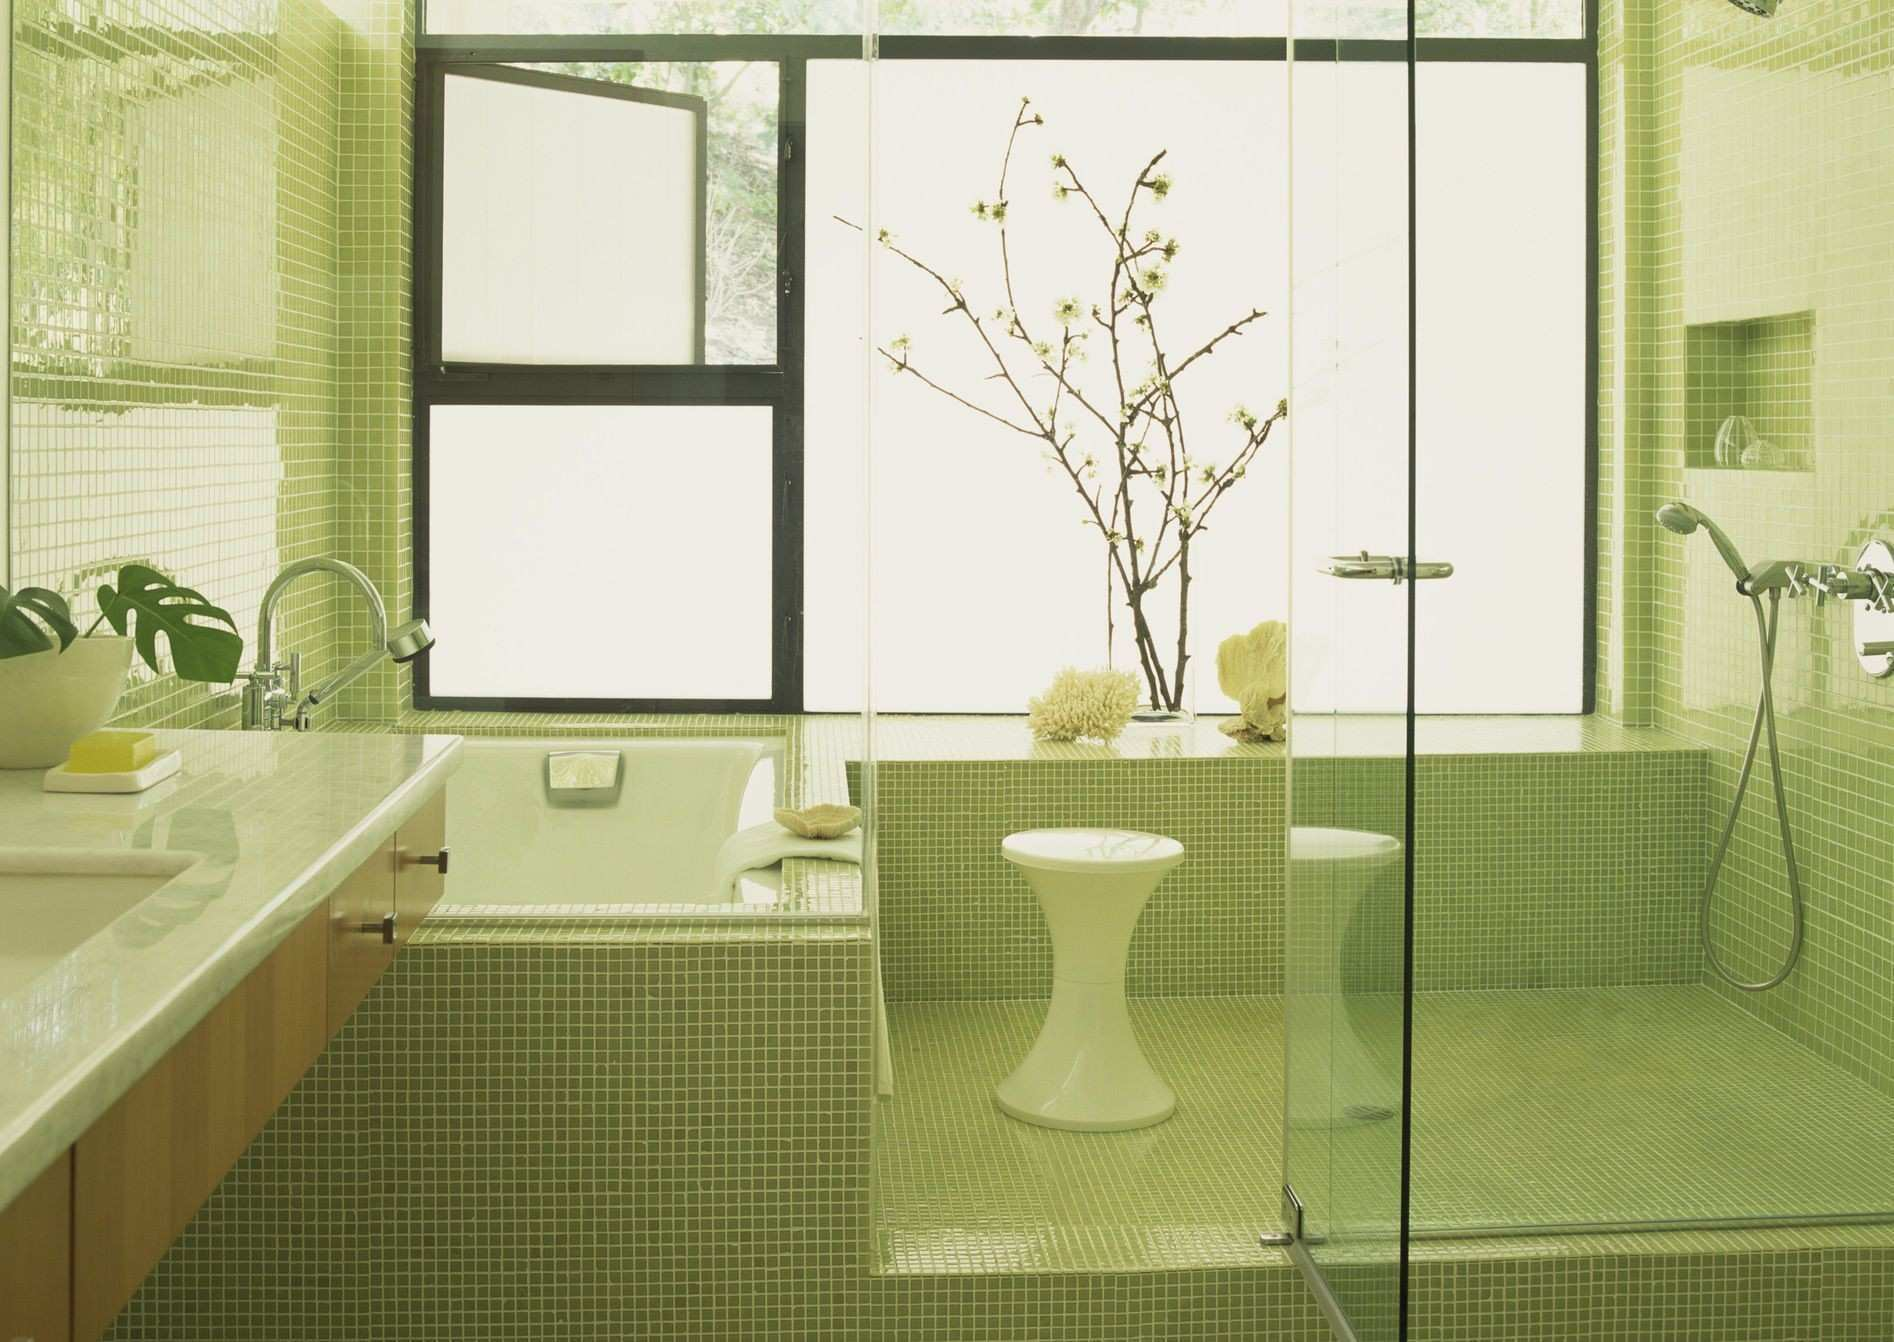 Bathroom Wall Decor Tiles Awesome the Four Laws Tiling—kitchen